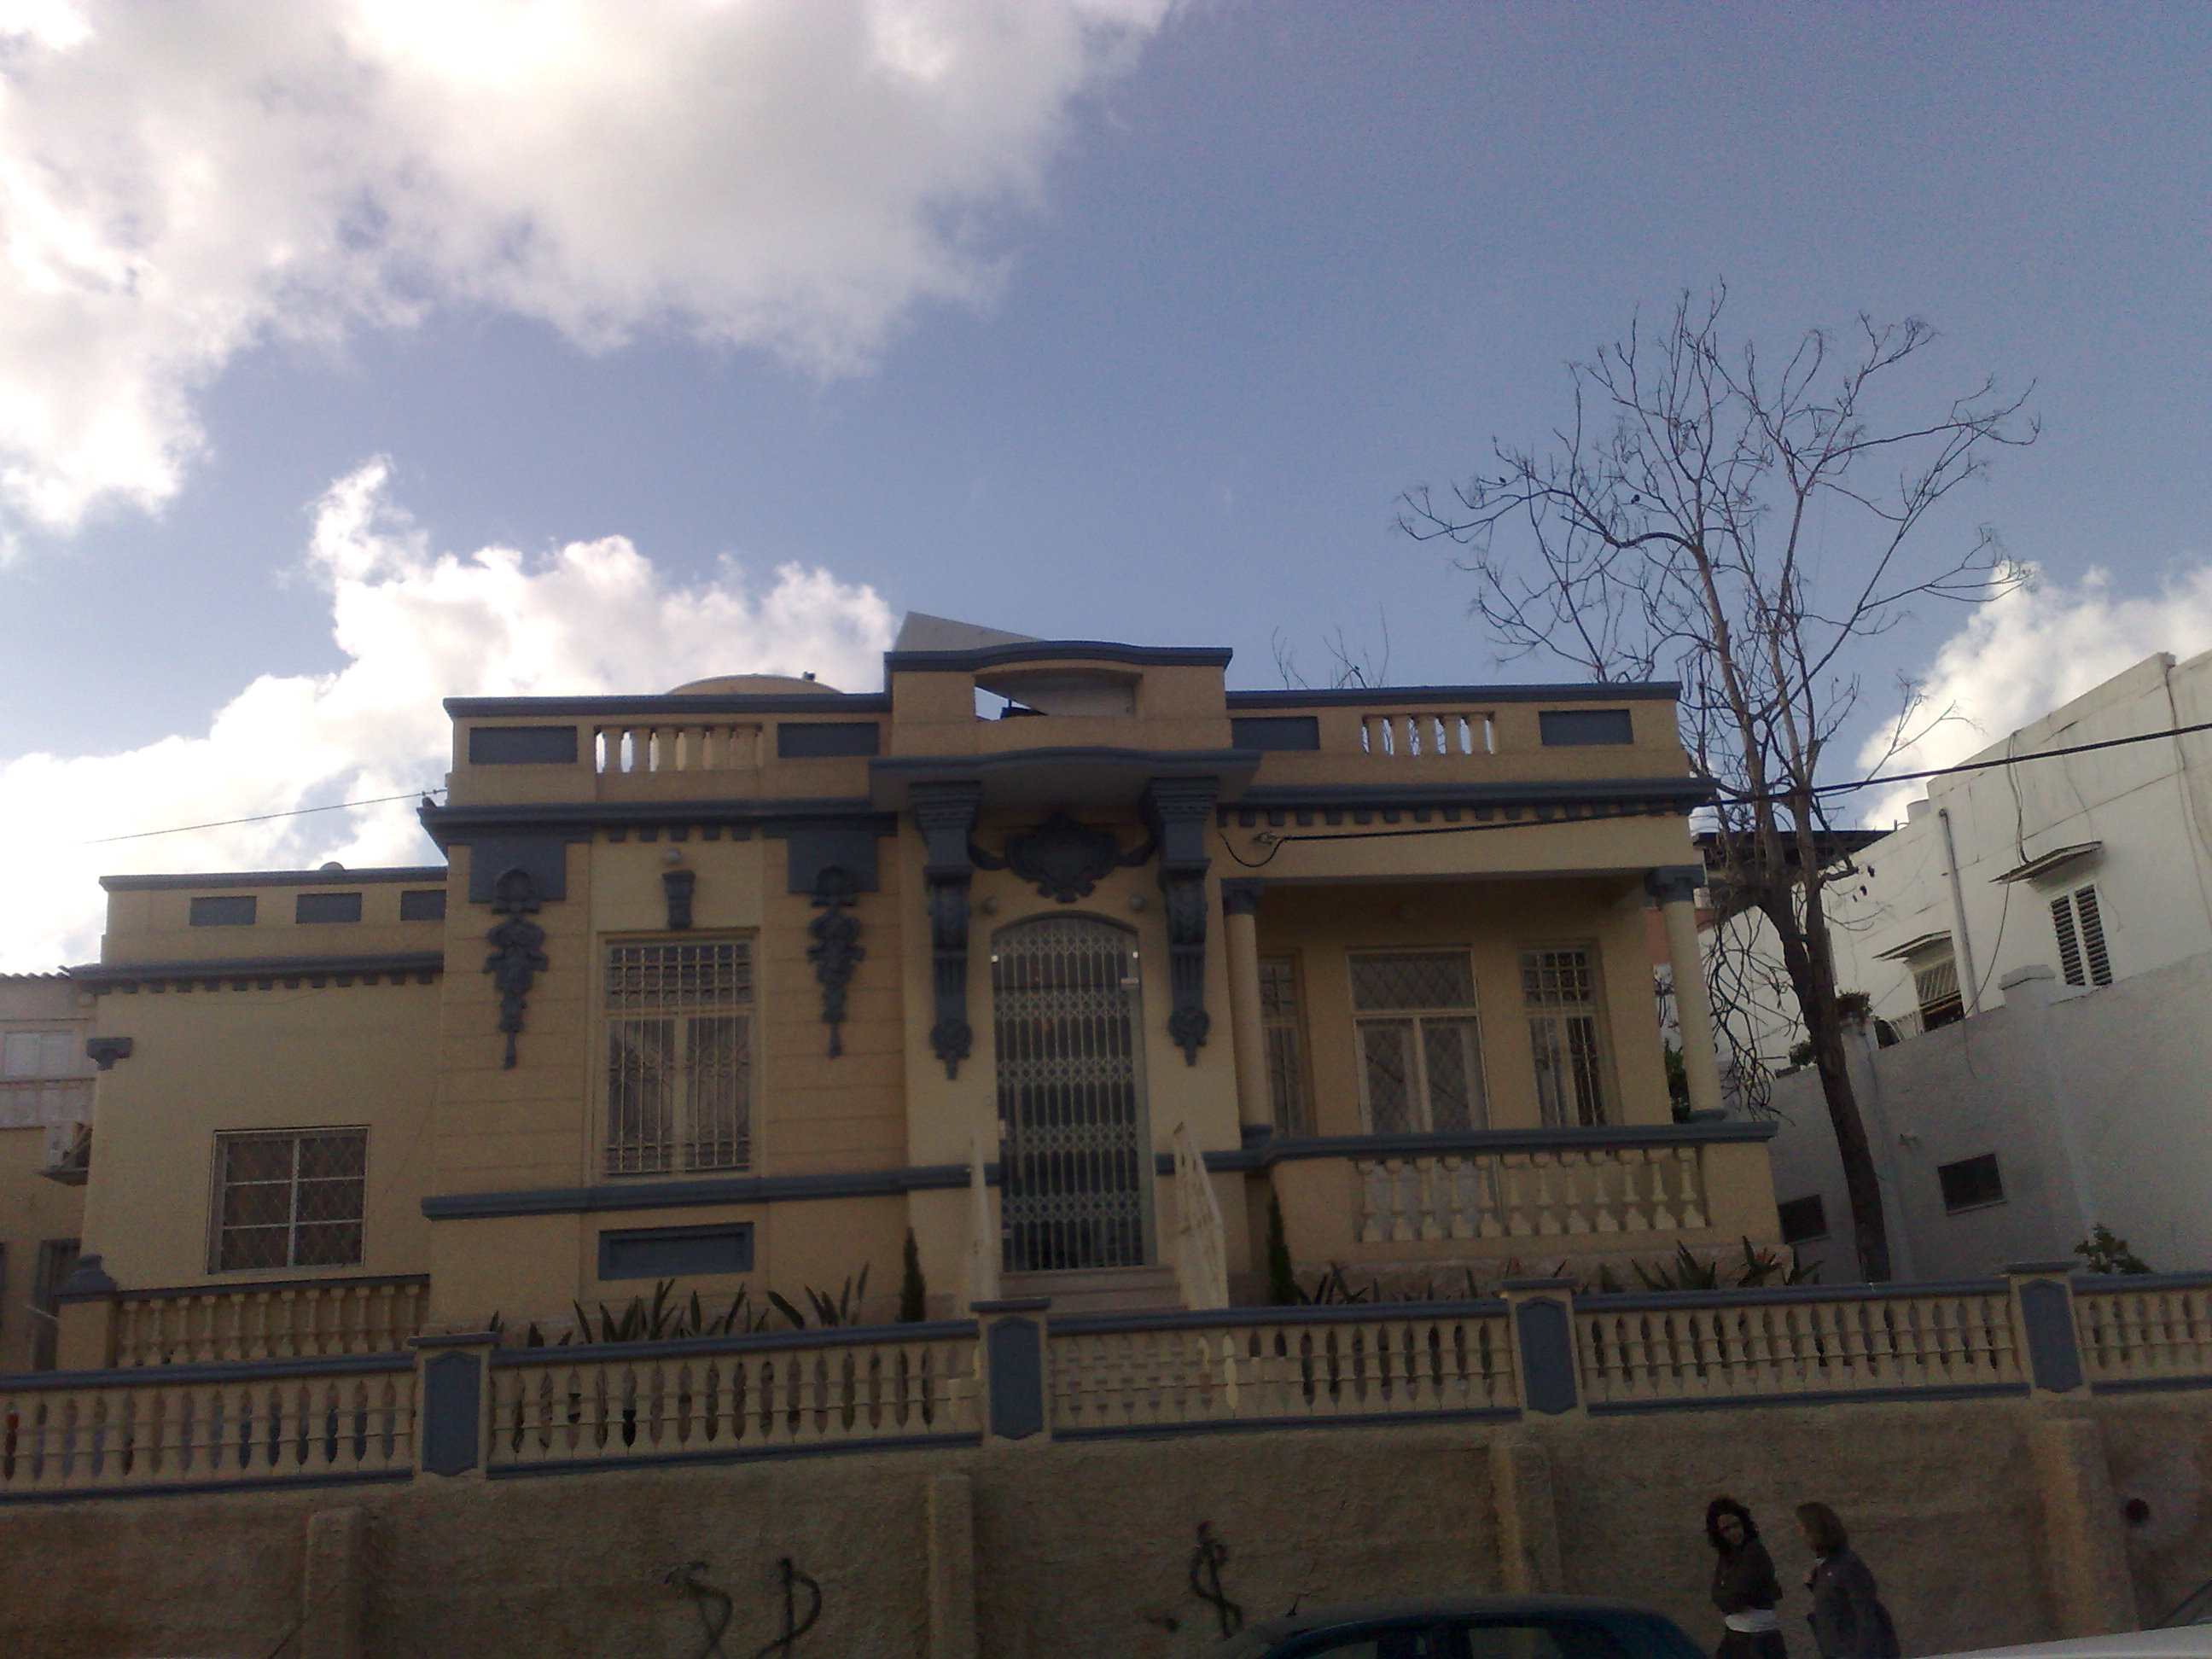 Jaffa - يافا : A house in Jaffa in the street where Ali Sheikh Ali's mansion is